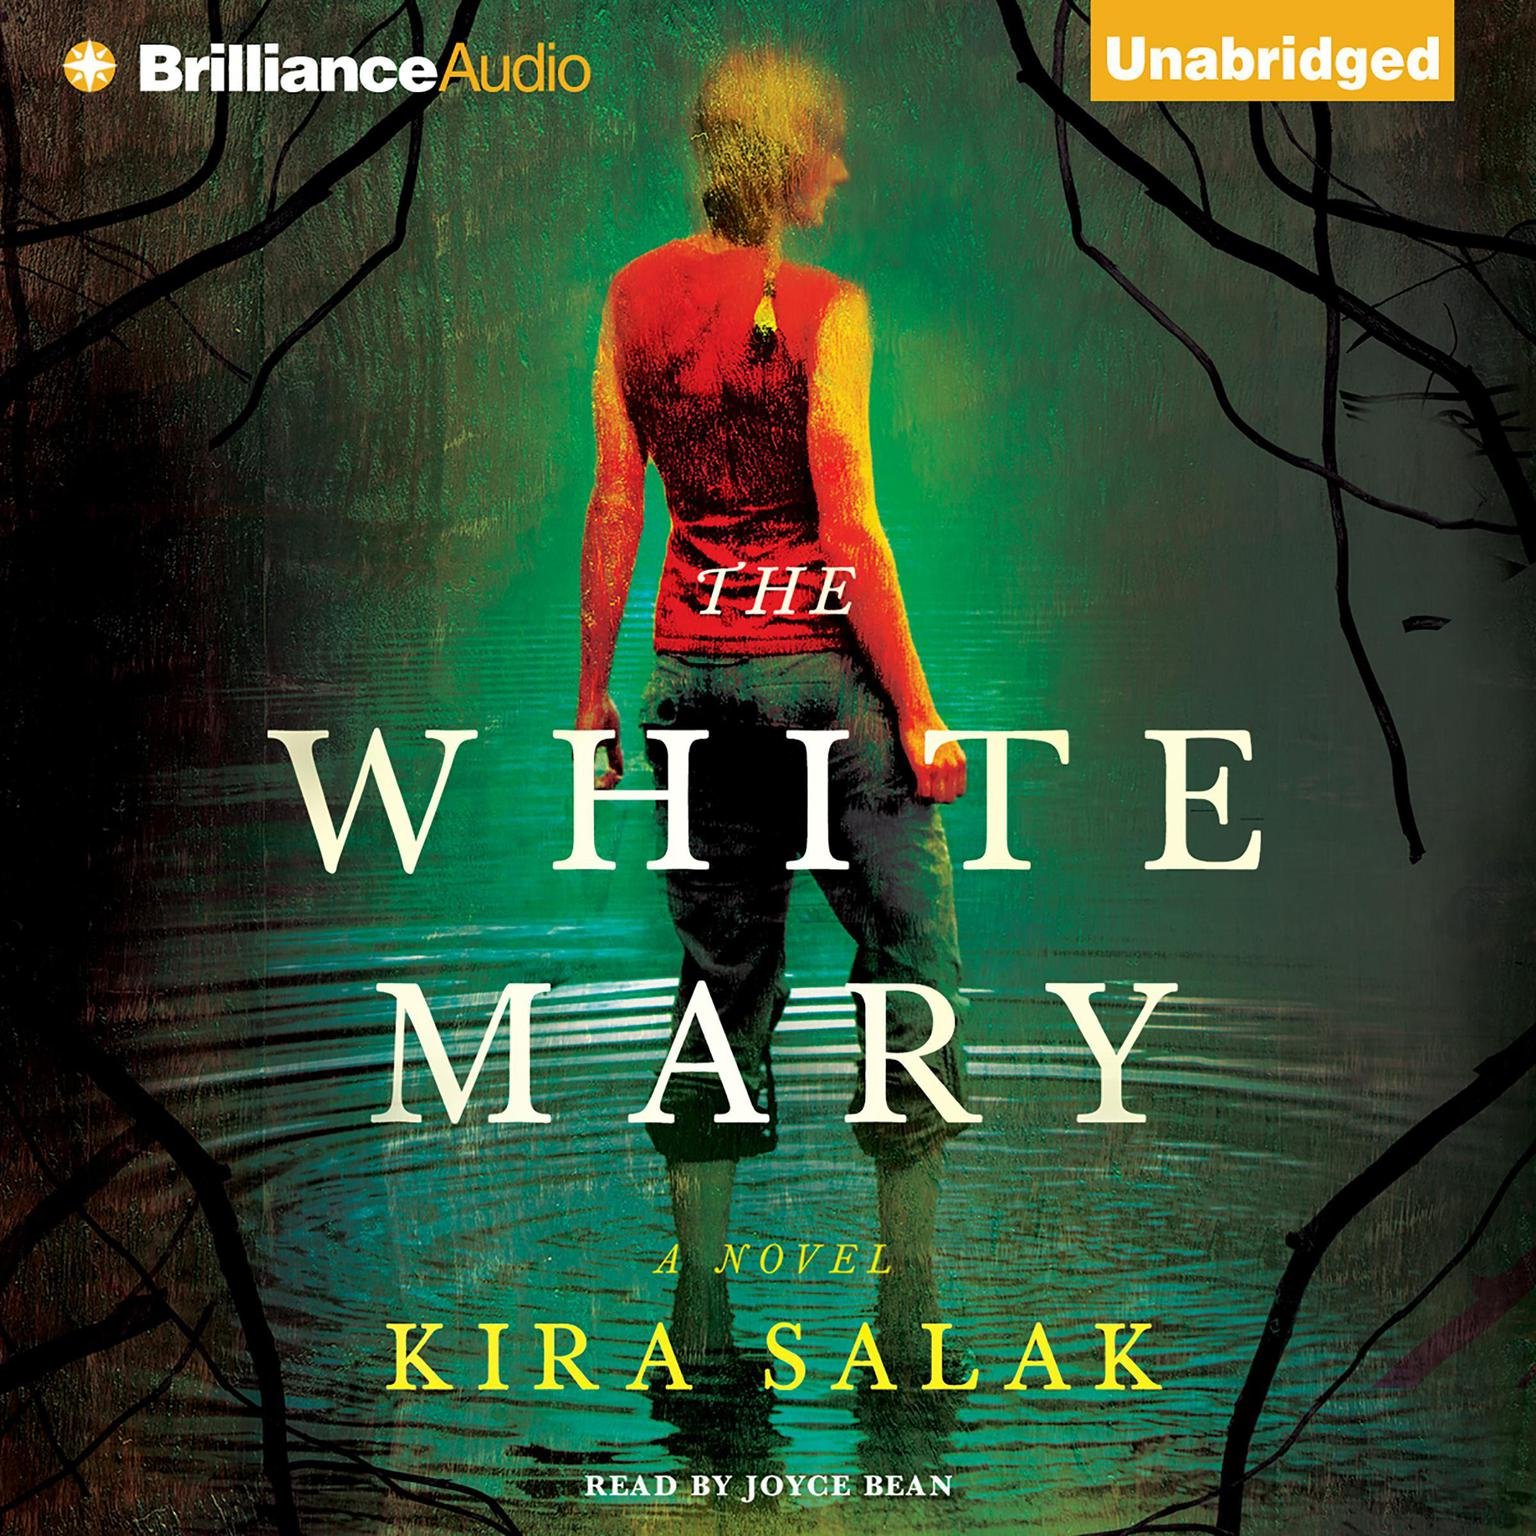 Printable The White Mary Audiobook Cover Art